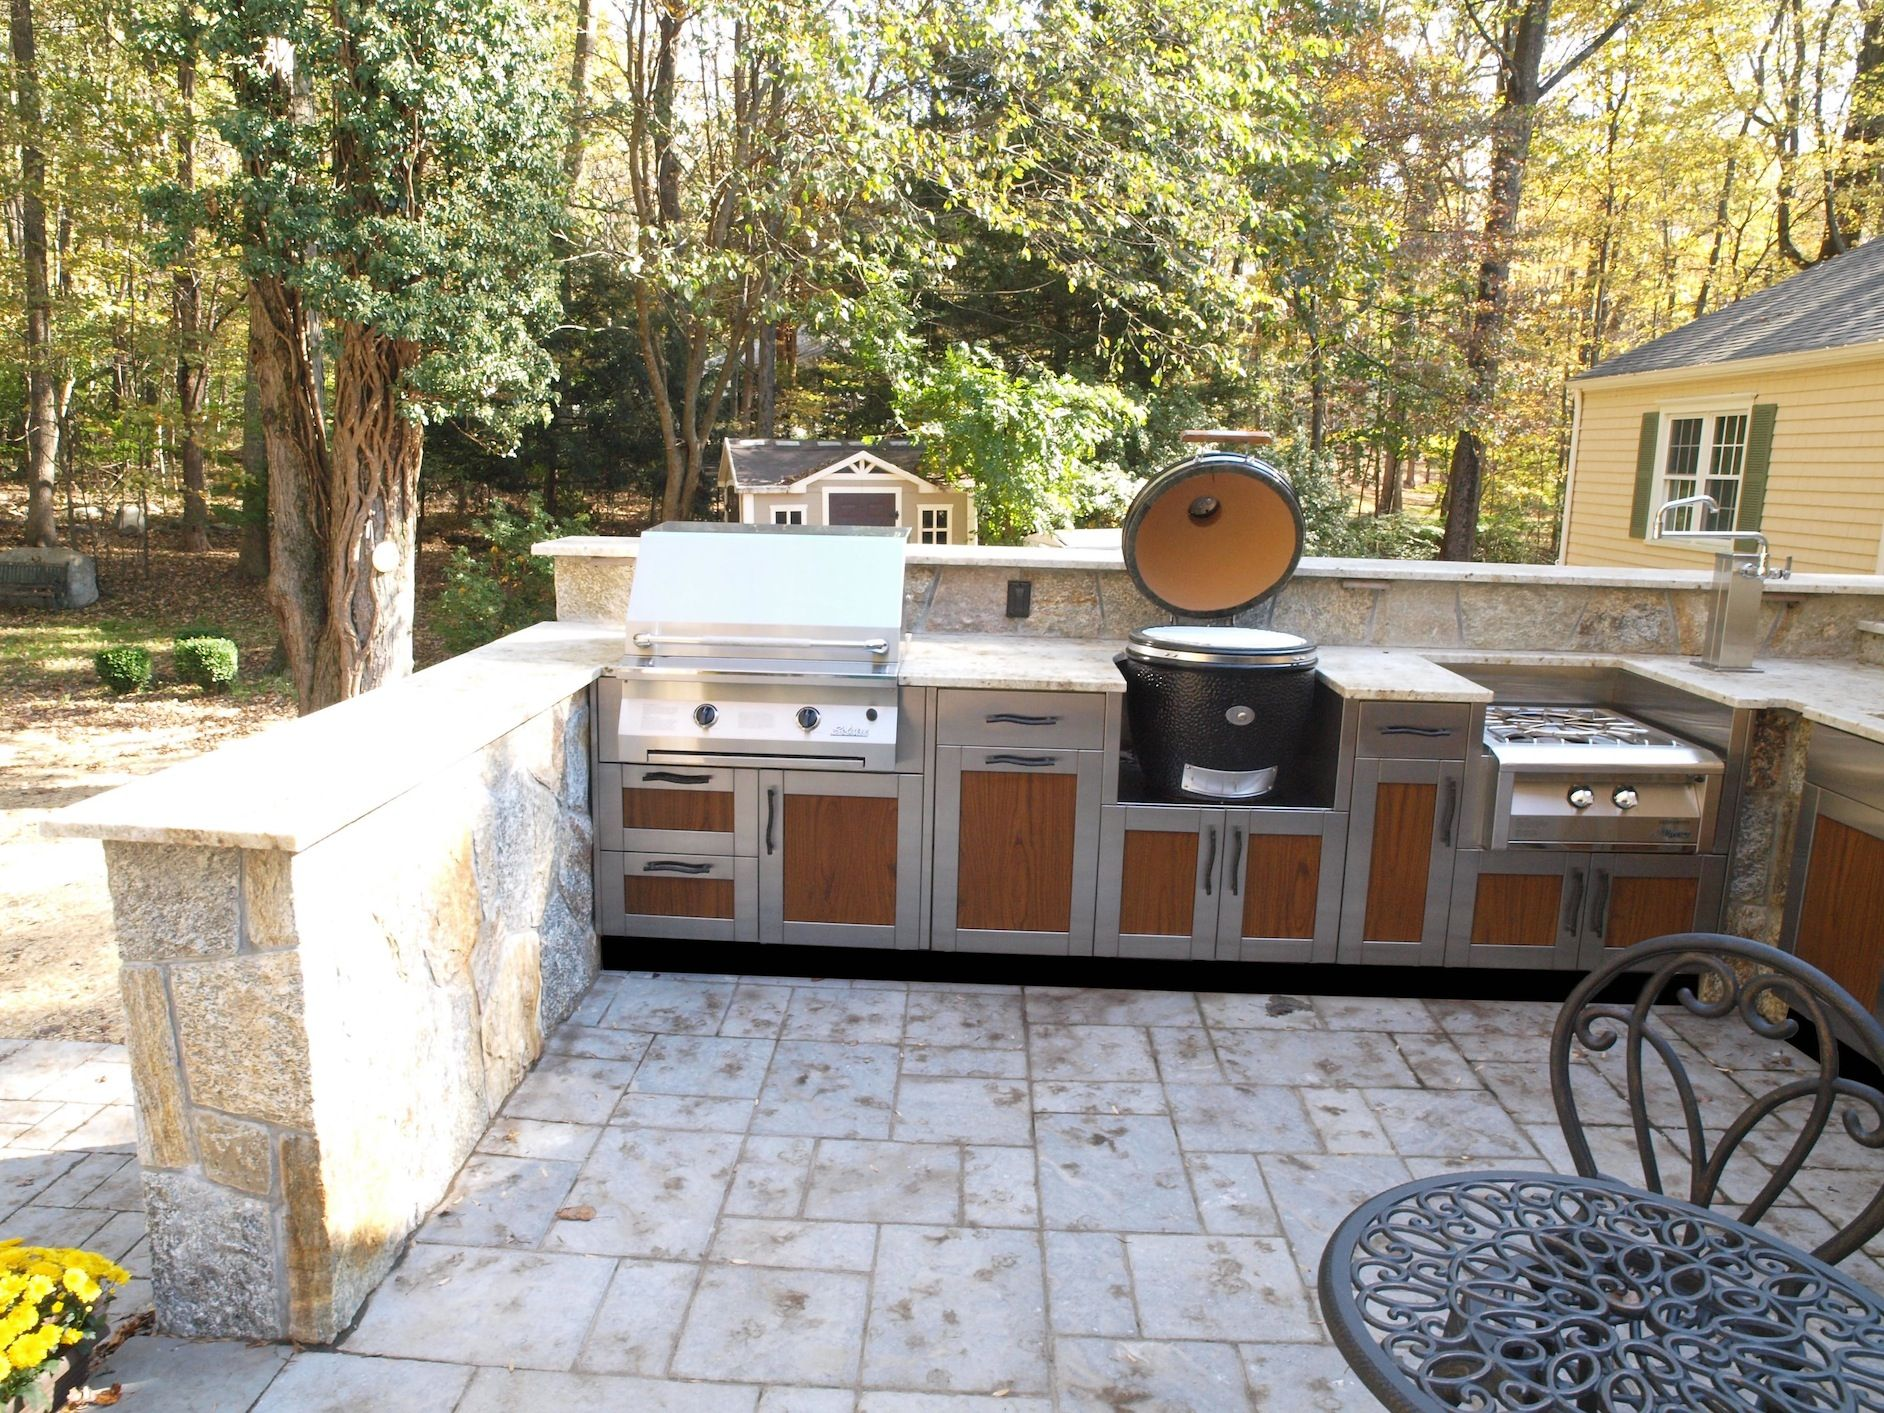 17 best images about outdoor kitchen ideas on pinterest